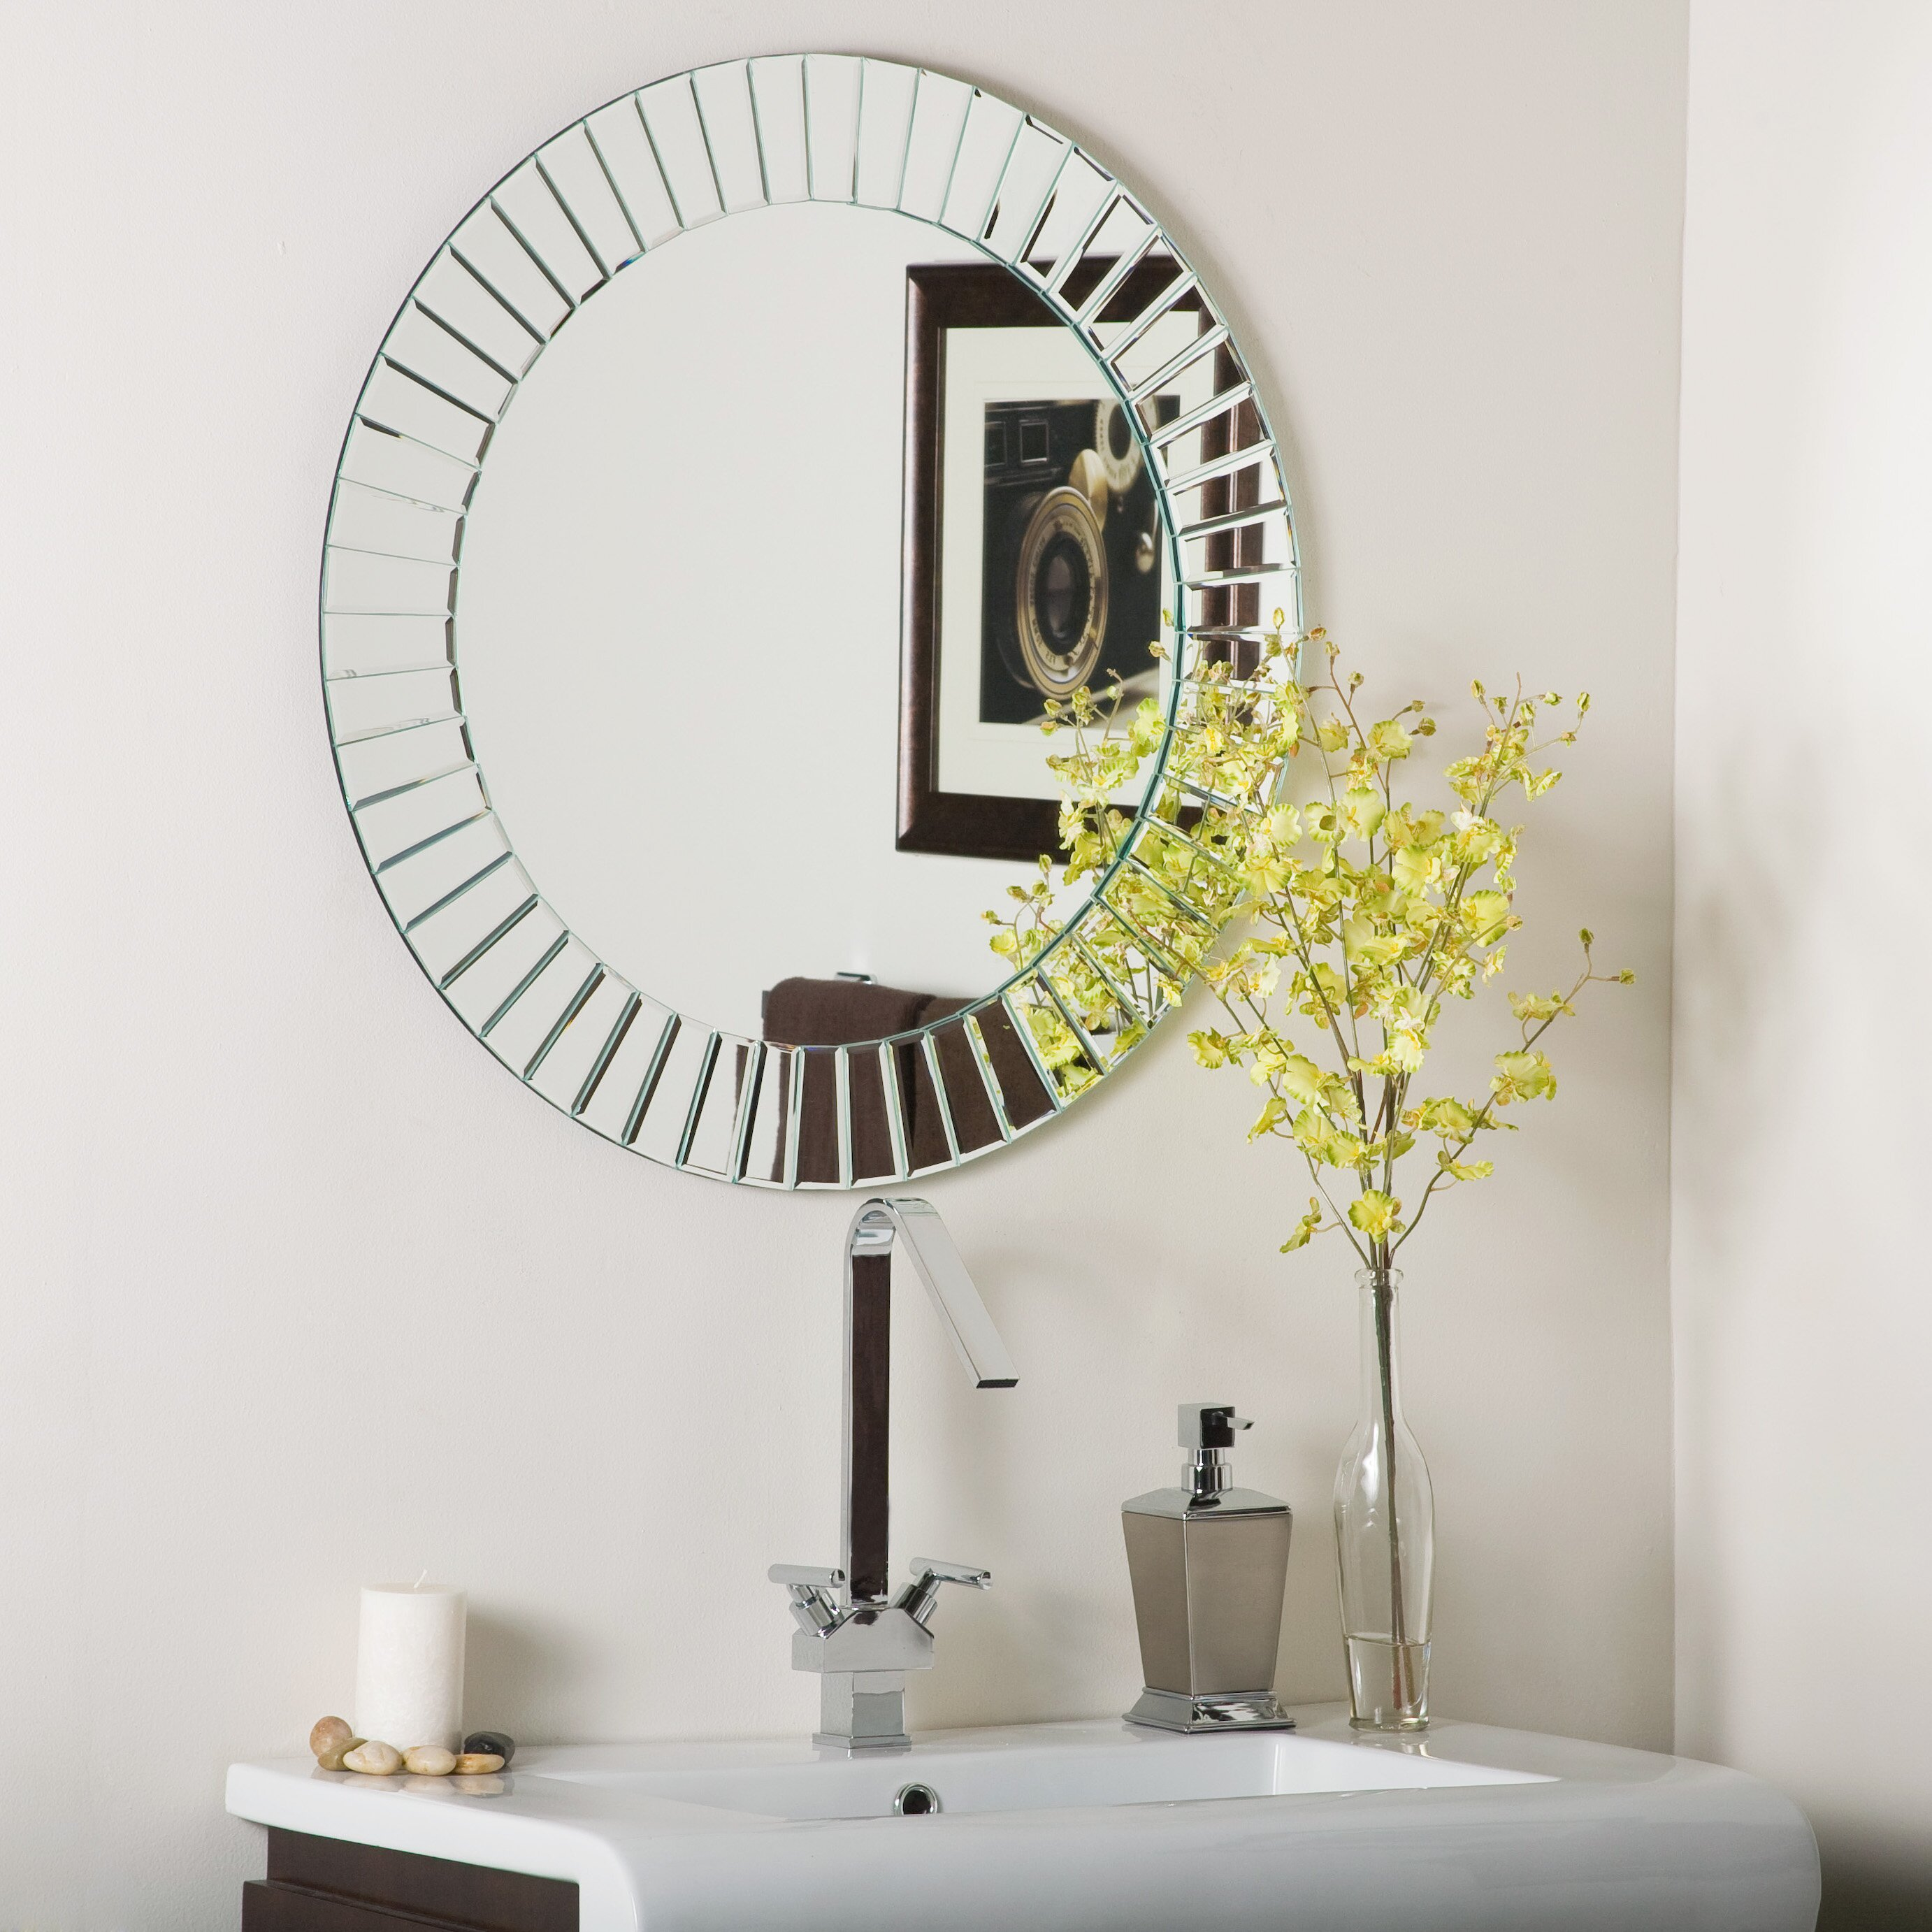 House of Hampton Laine Frameless Beveled Wall Mirror. House of Hampton Laine Frameless Beveled Wall Mirror  amp  Reviews